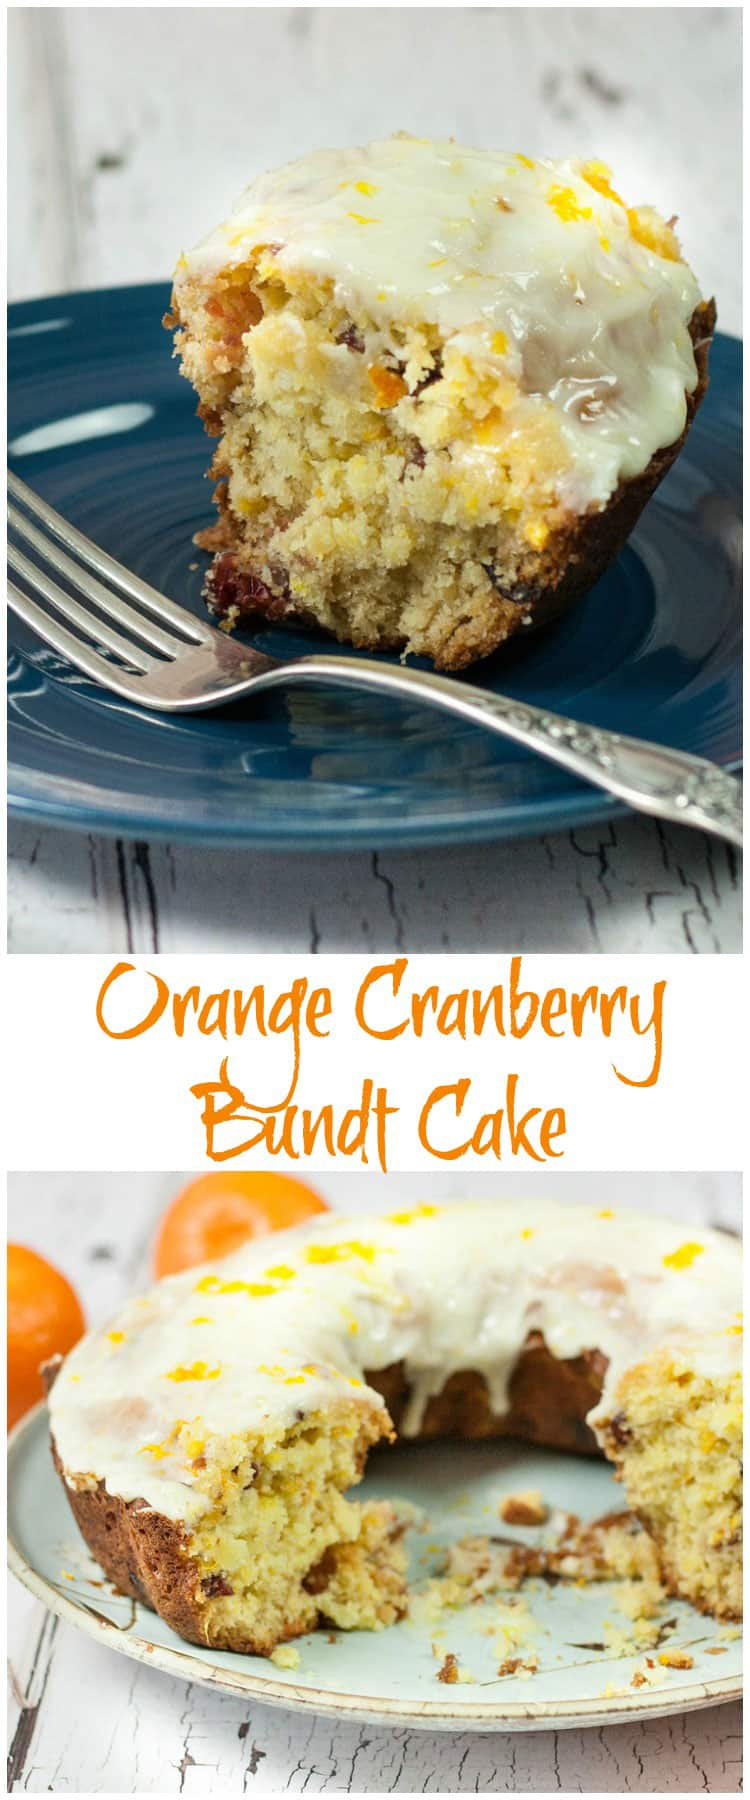 You will love this Delicious Orange Cranberry Bundt Cake Recipe, full of flavor with fresh oranges, tart cranberries & yummy Orange Cranberry Glaze! Sweet & tart this homemade scratch cake is soft but also dense like a pound cake. You can feed a crowd too! #bundtcakes #orangecranberry #orangecranberryglaze #cranberrycakerecipes